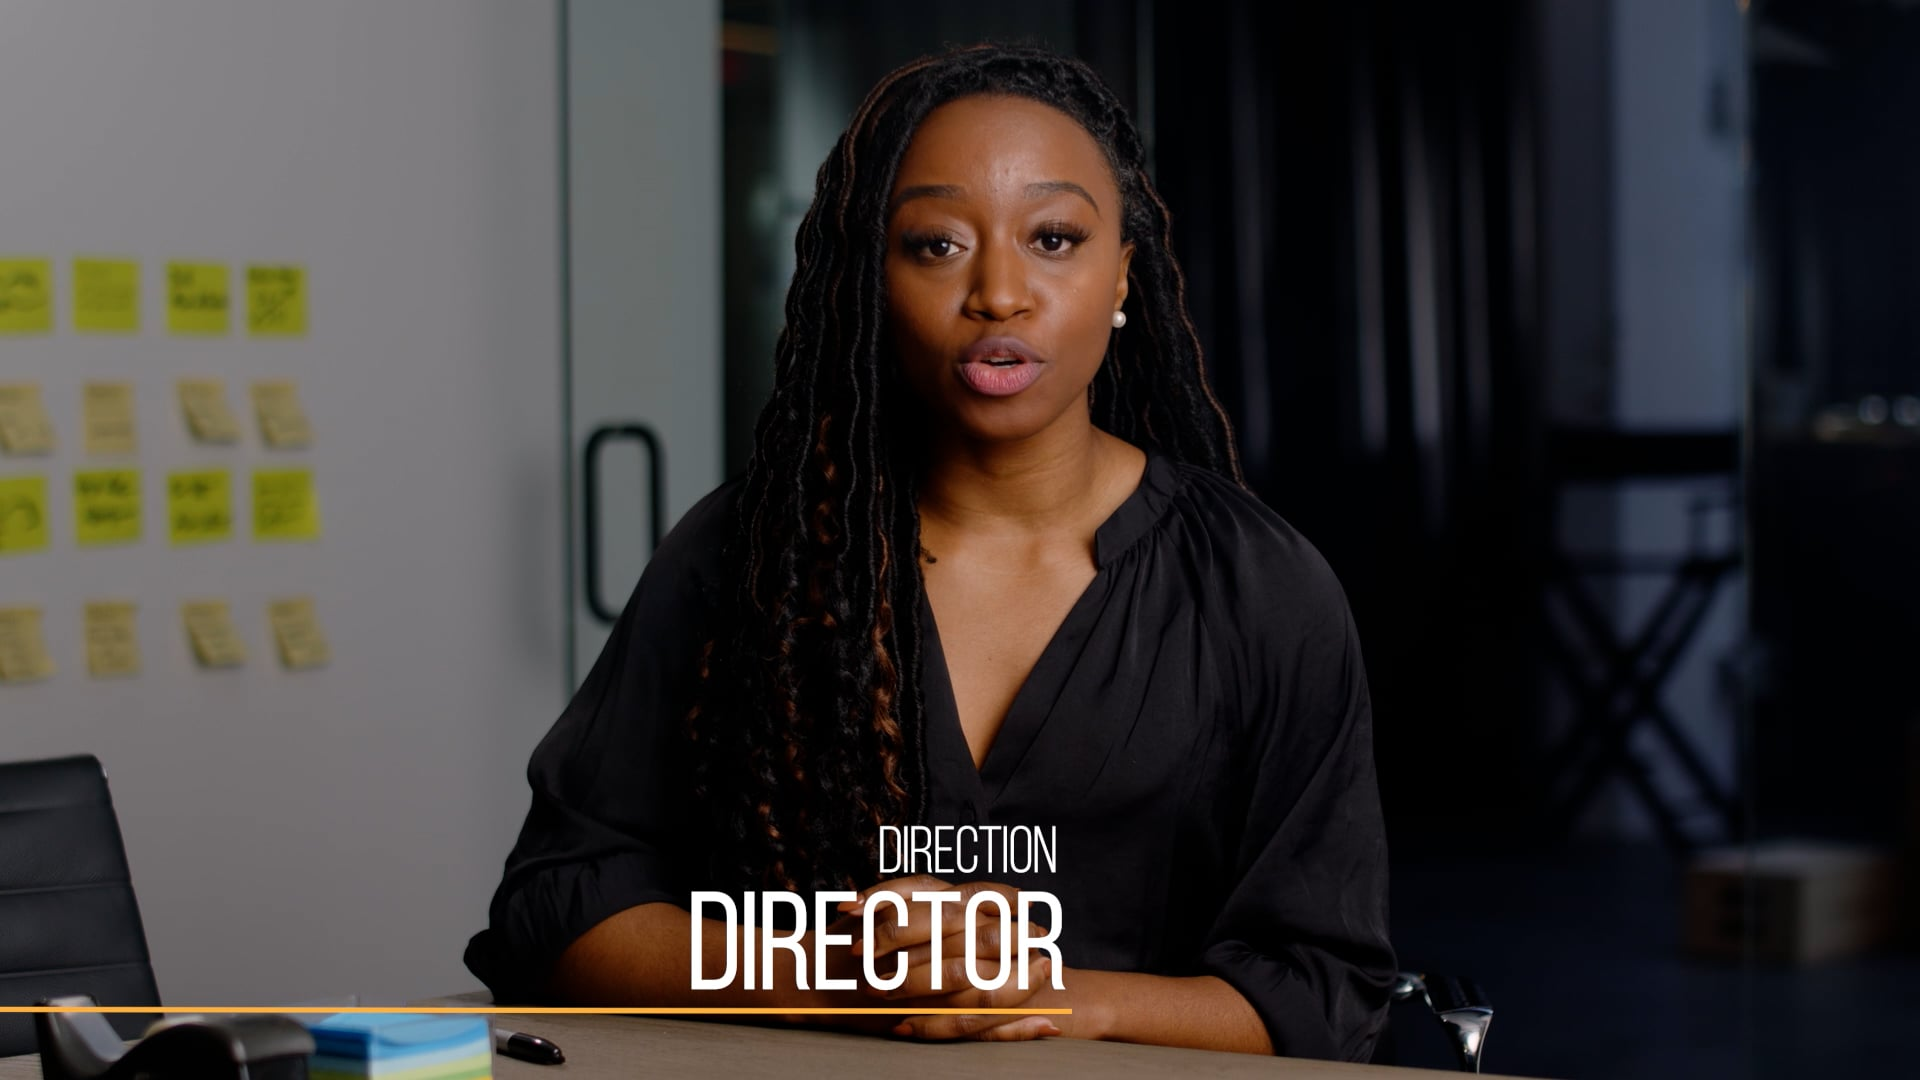 18 Production201 The Director